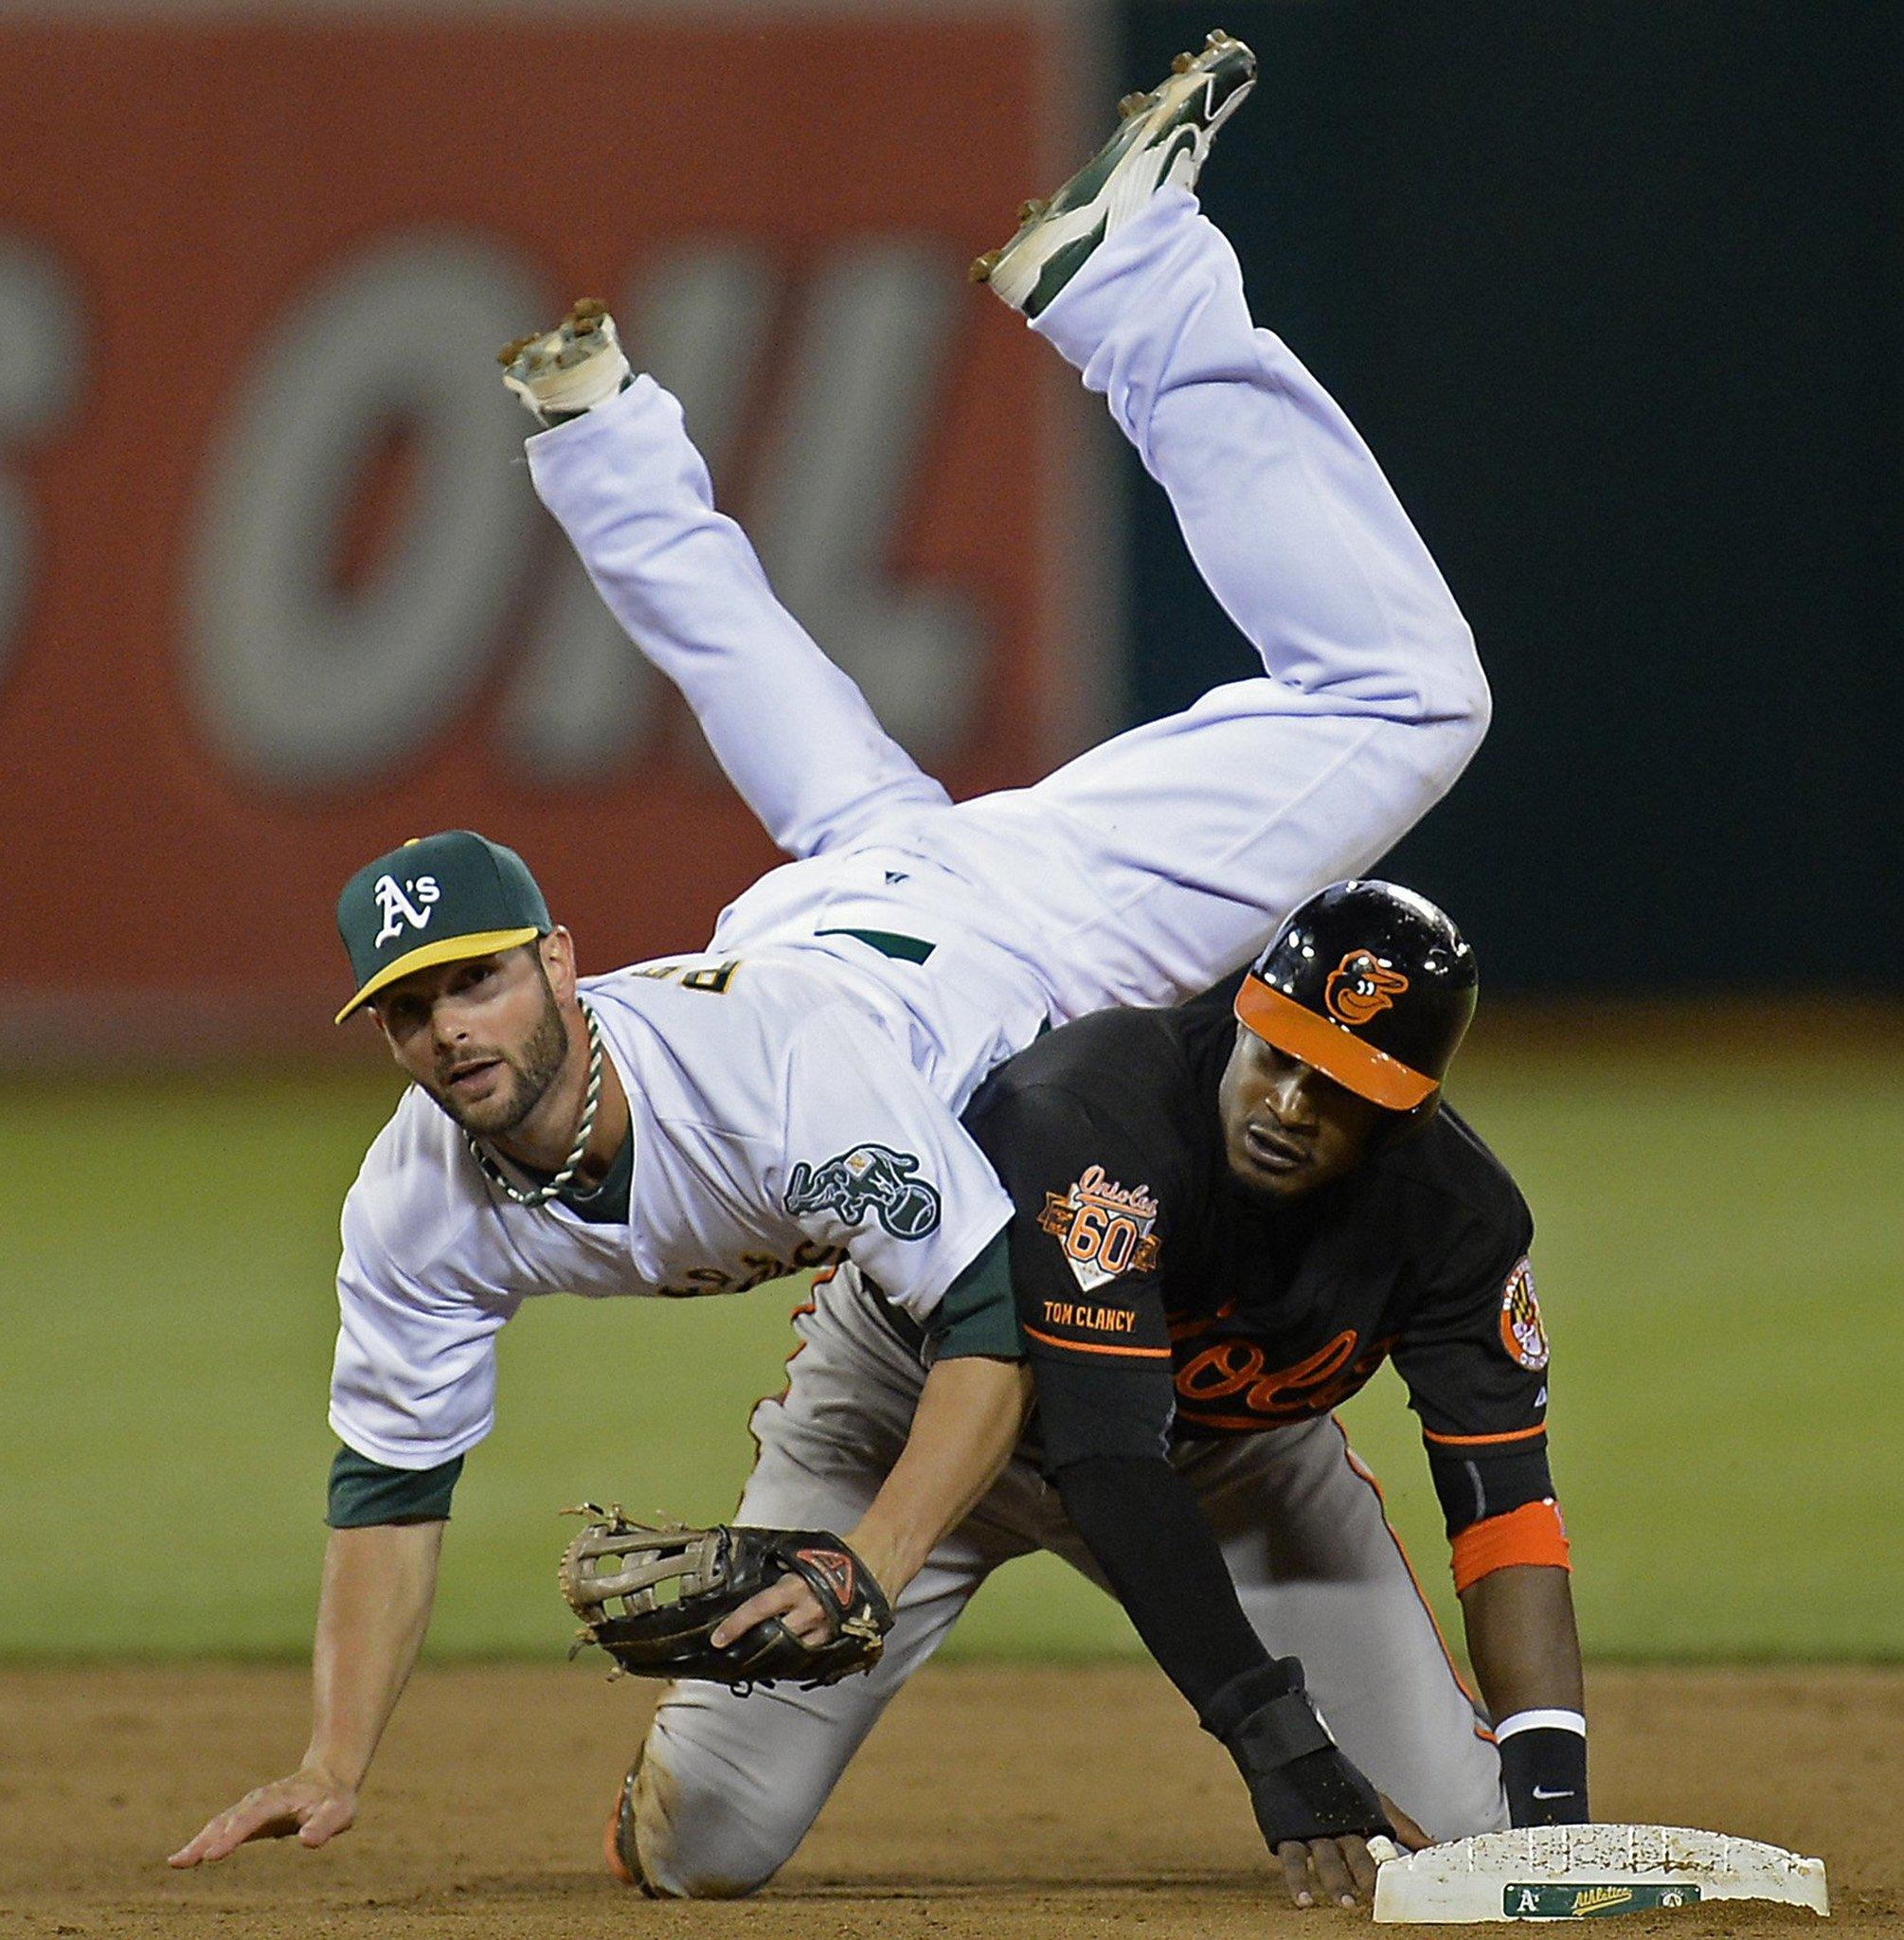 Oakland Athletics second baseman Andy Parrino lands on the Baltimore Orioles' Adam Jones after completing a double play in the eighth inning at O.co Coliseum.